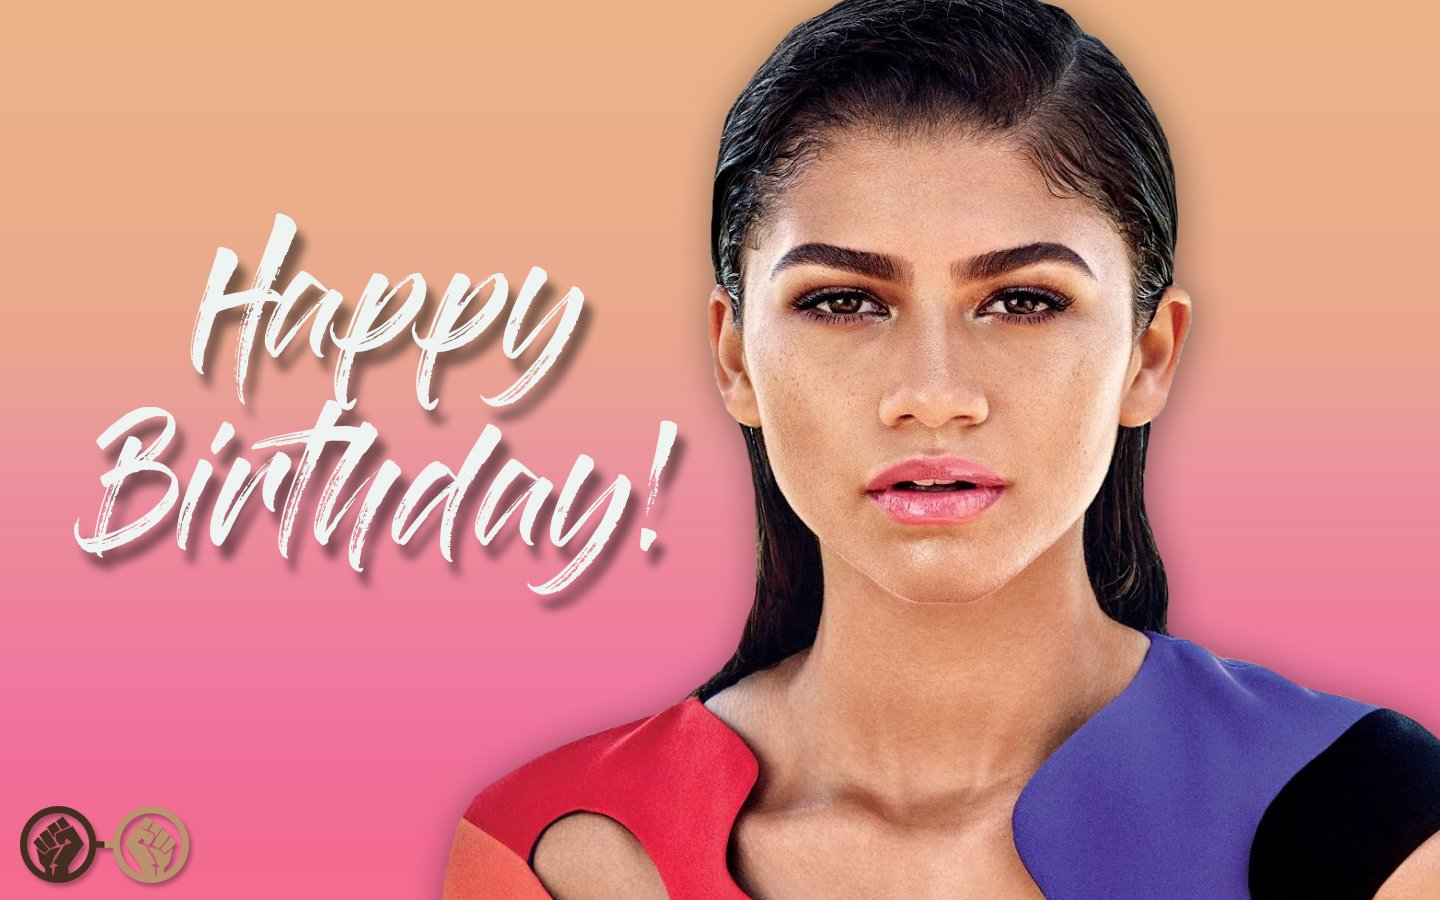 Happy birthday, The talented actress turns 22 today. We hope she\s having an amazing day!